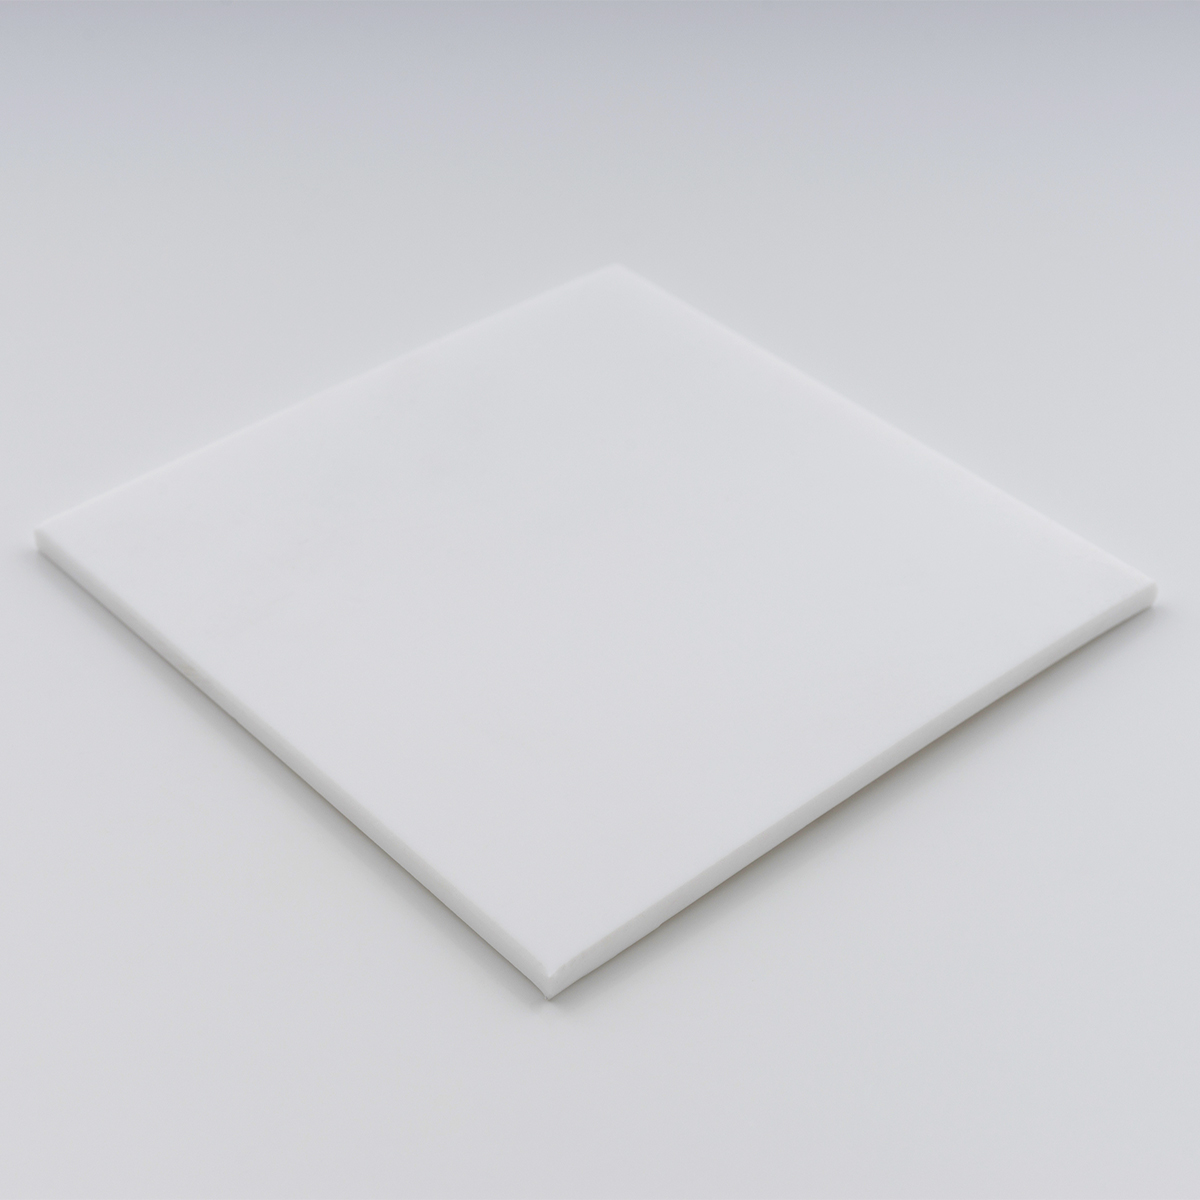 White Extruded Pvc Sheet